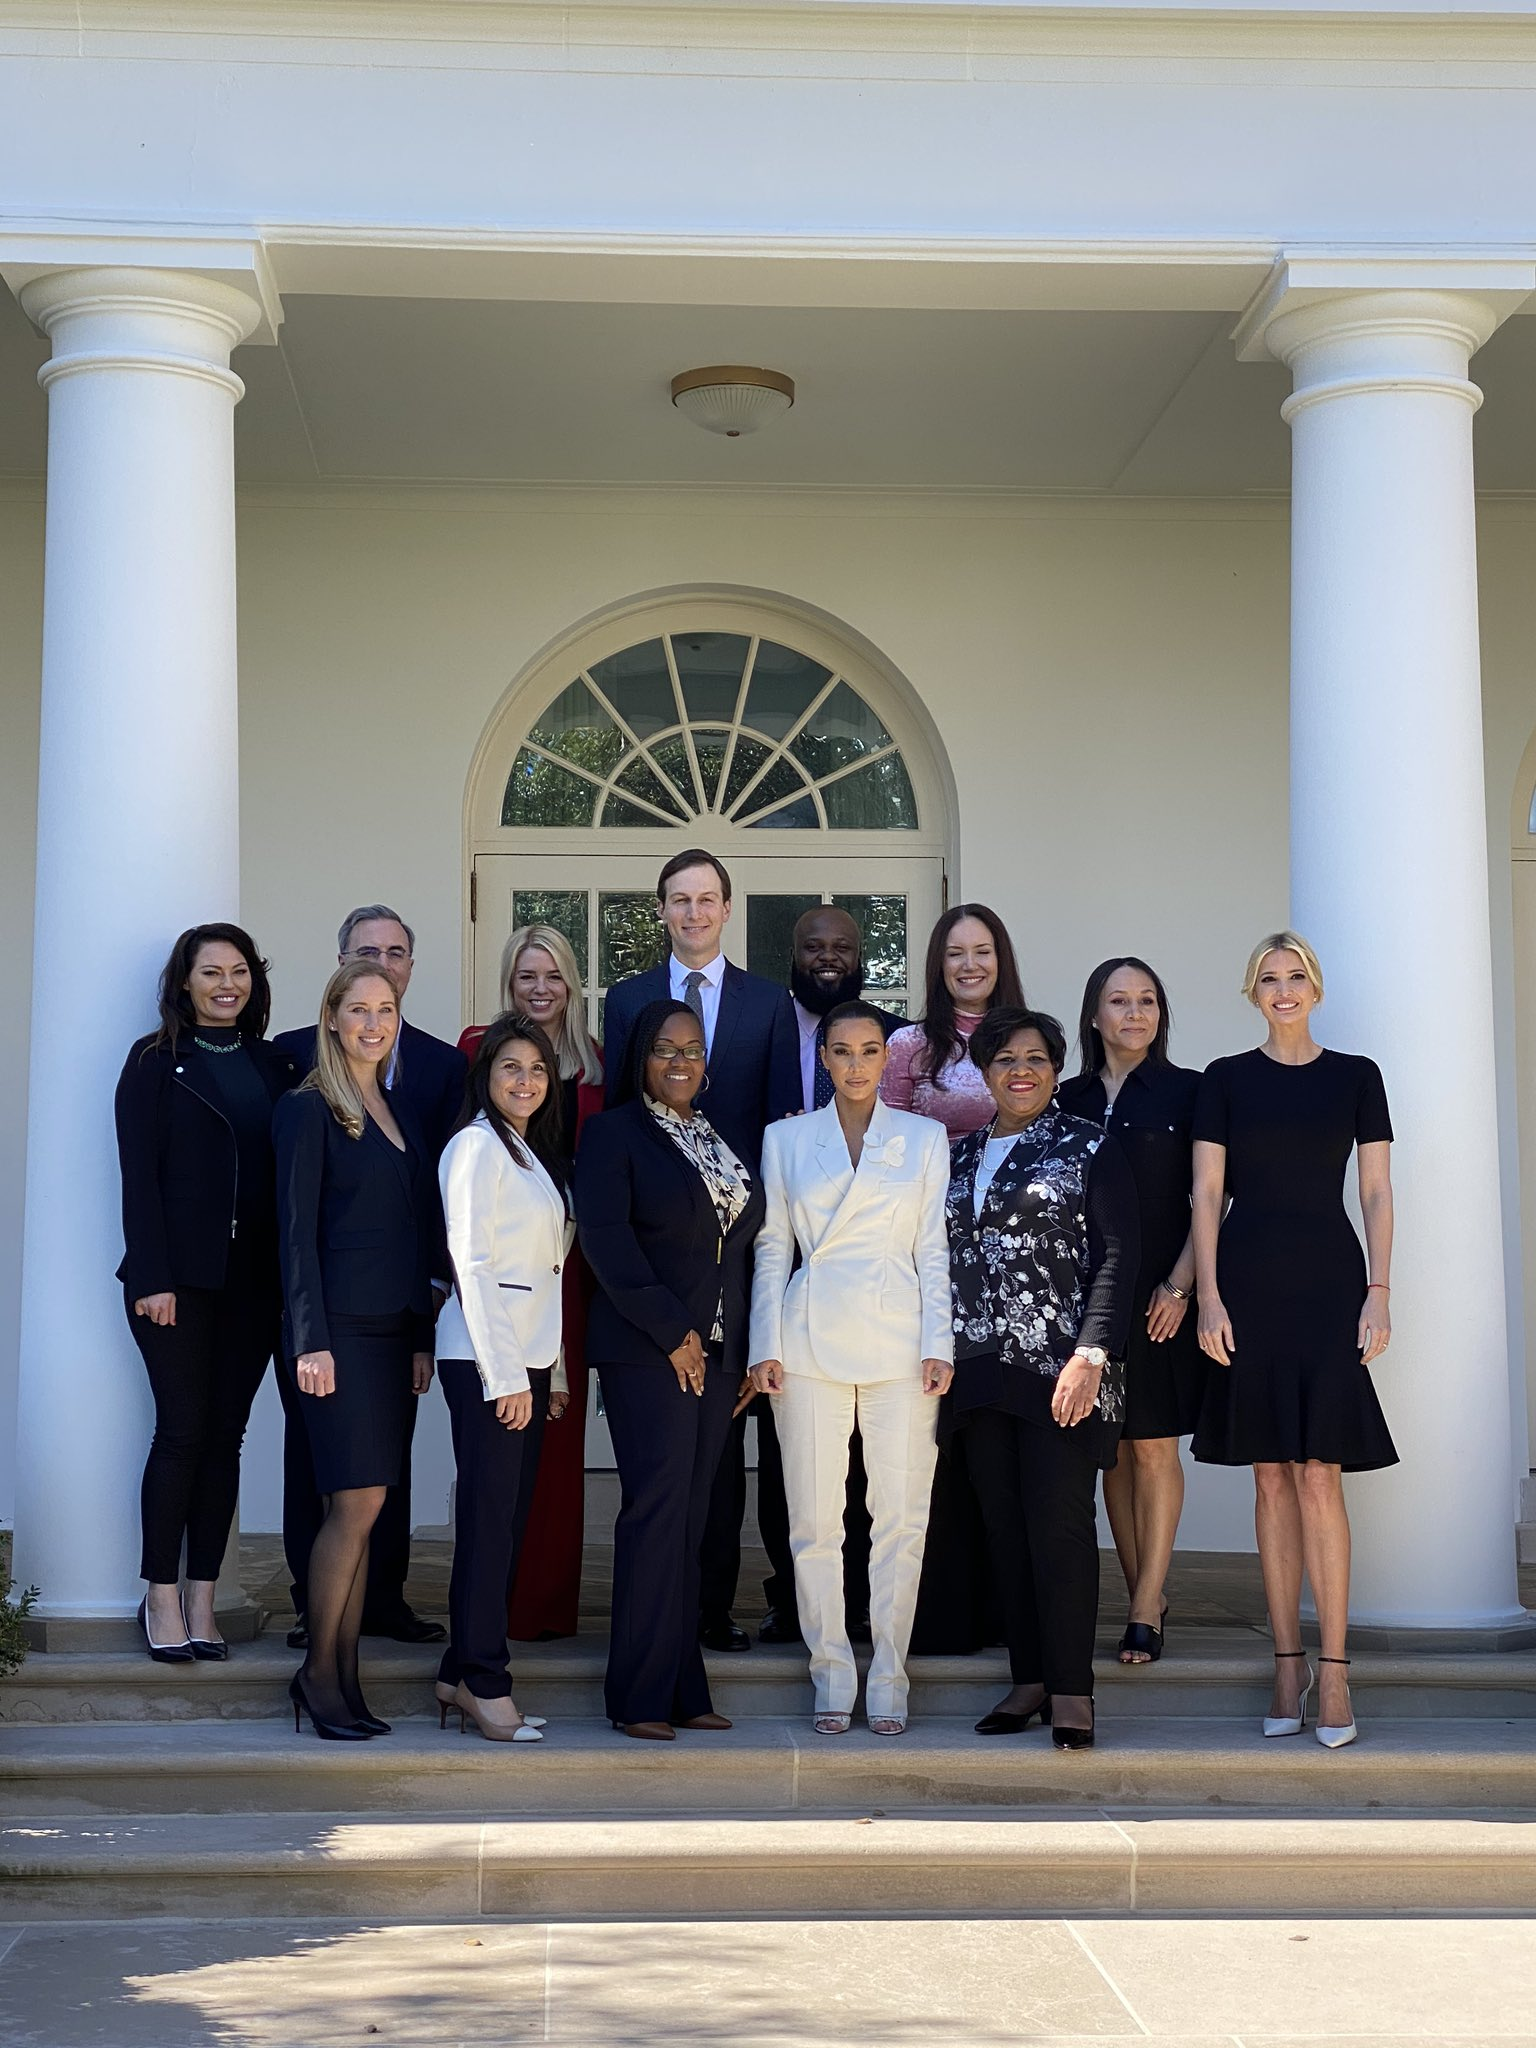 Kim Kardashian At White House With Women She Helped Free From Prison